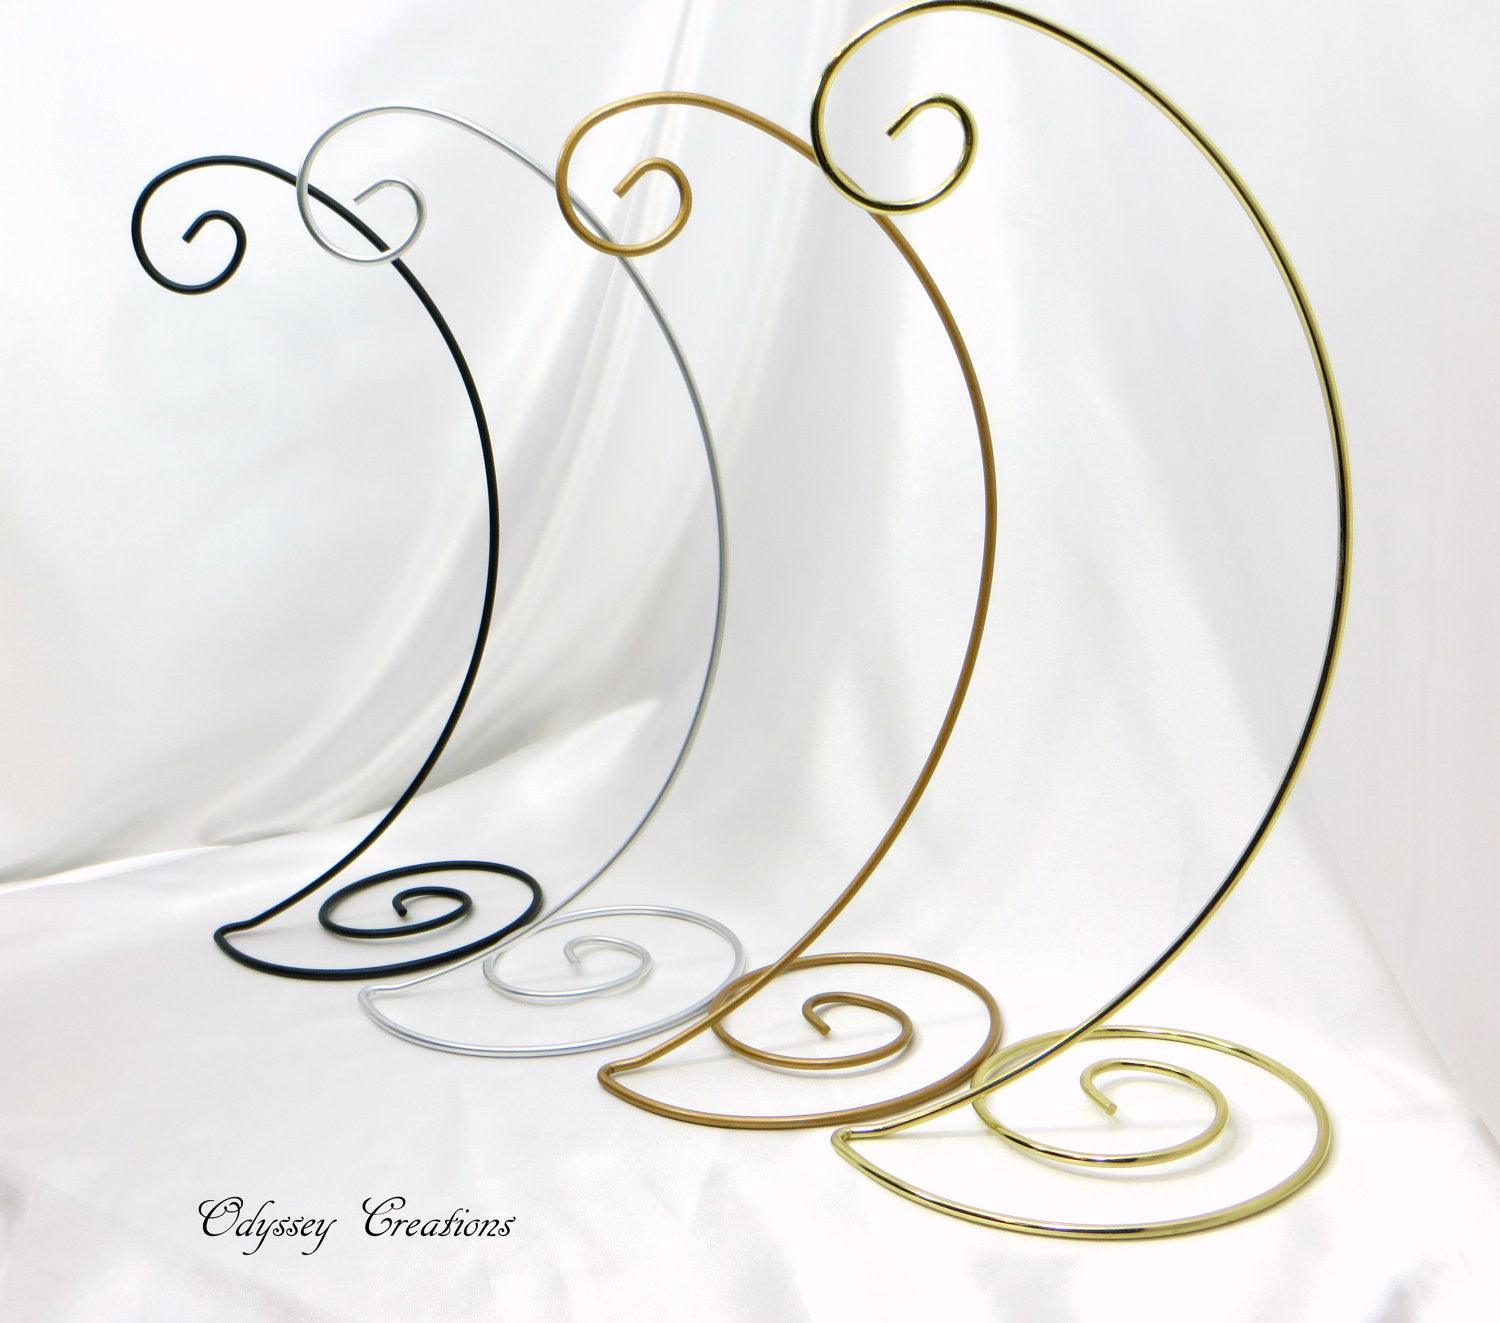 Spiral Base Large 13 Inch Tall Ornament Stands in Antique Gold Matte or Bright Gold Brass - Odyssey Creations